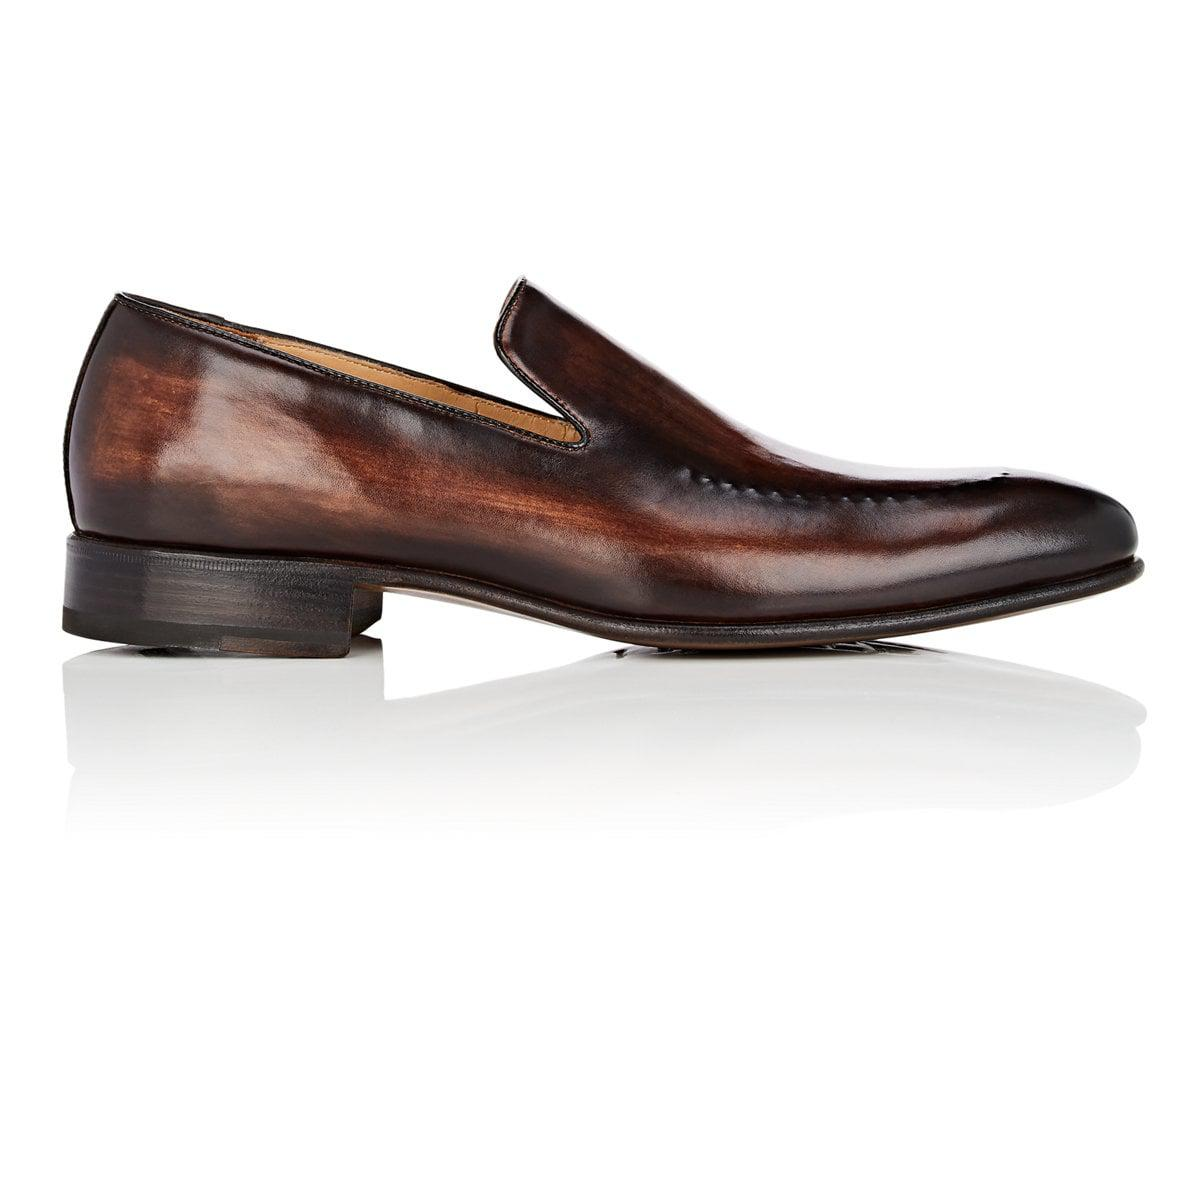 c6807e93d49 Lyst - Harris Stitch-detail Leather Venetian Loafers in Brown for Men